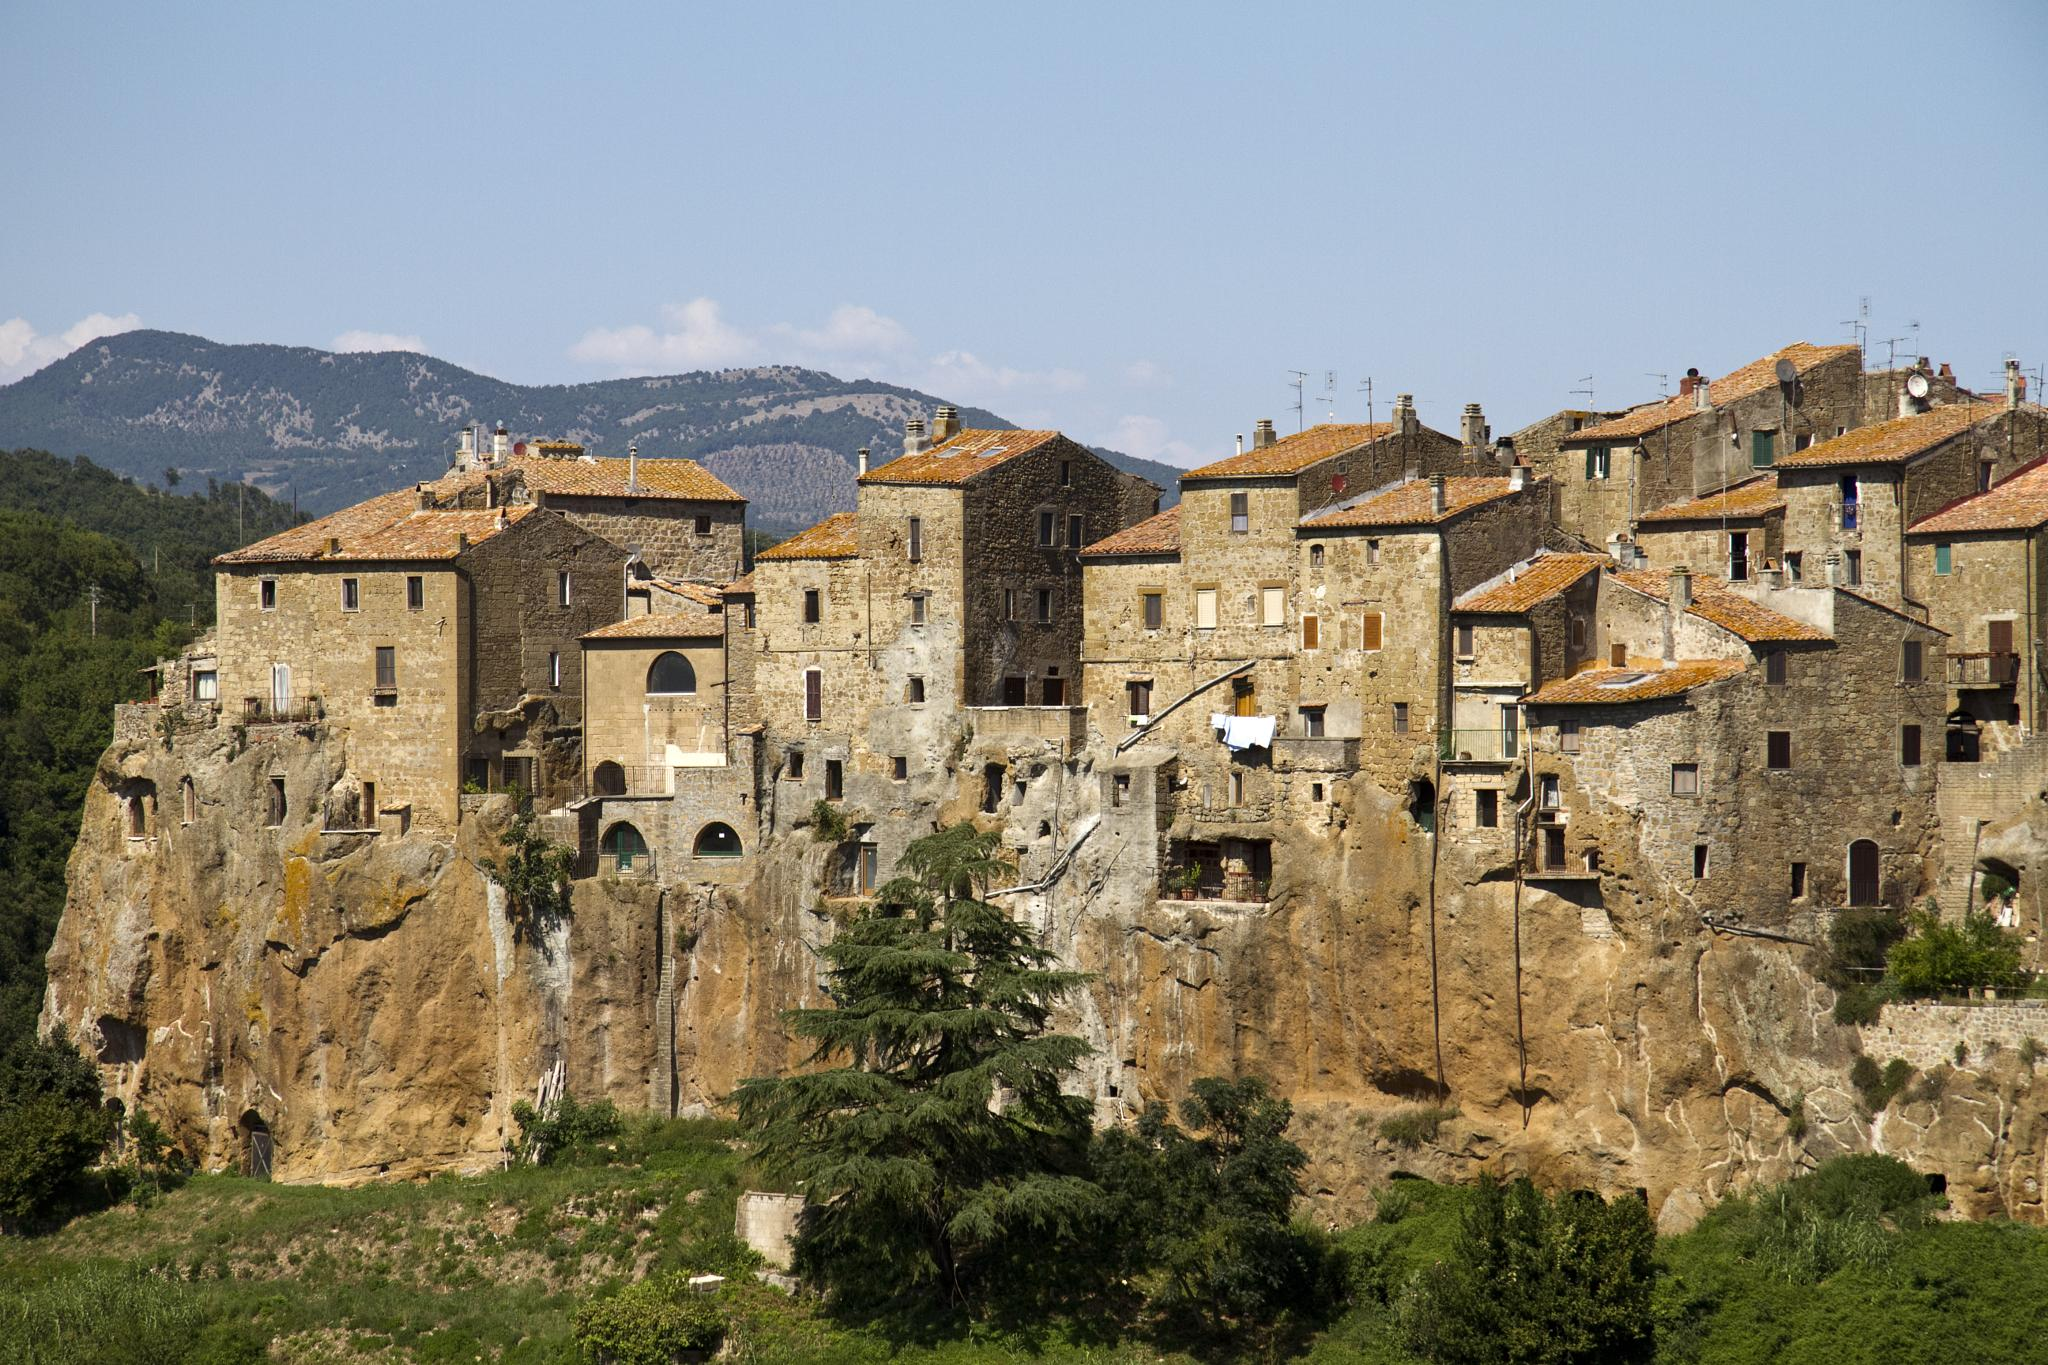 Pitigliano #3 by Storvandre Photography